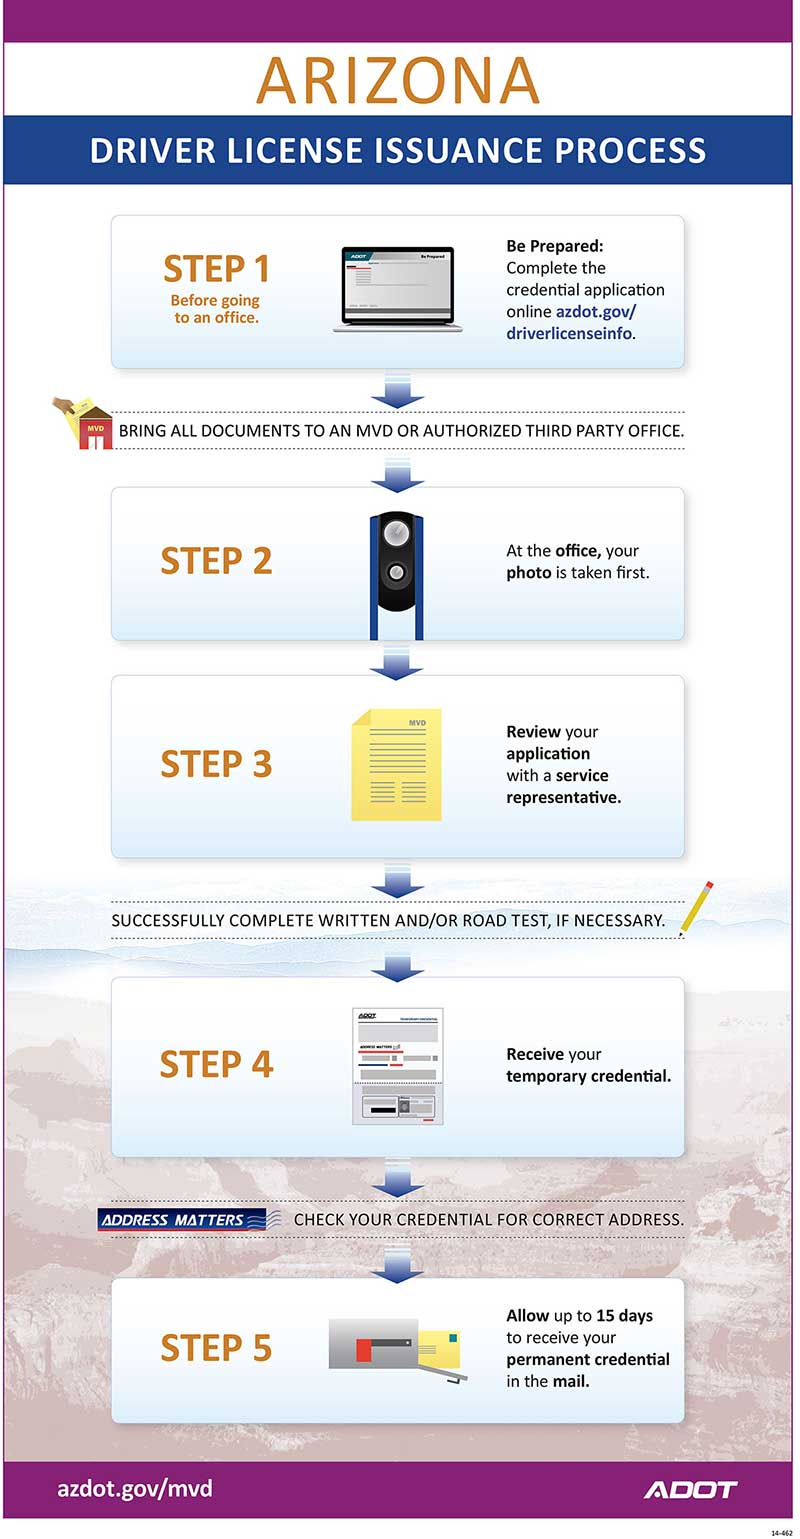 Driver License Issuance Process Infographic